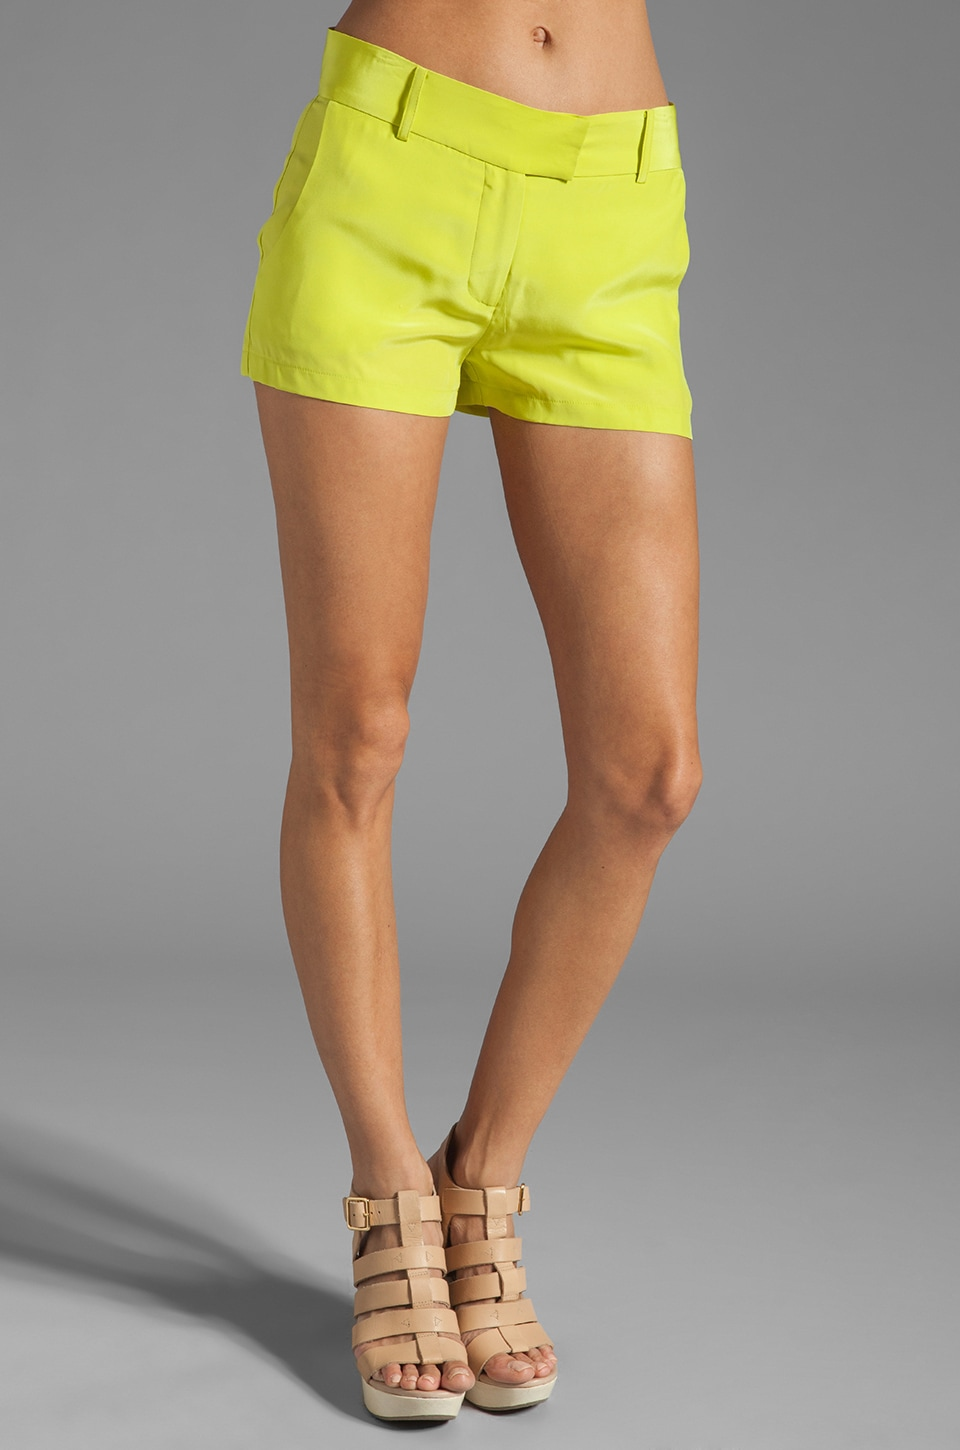 Amanda Uprichard Brooklyn Silk Short in Lime